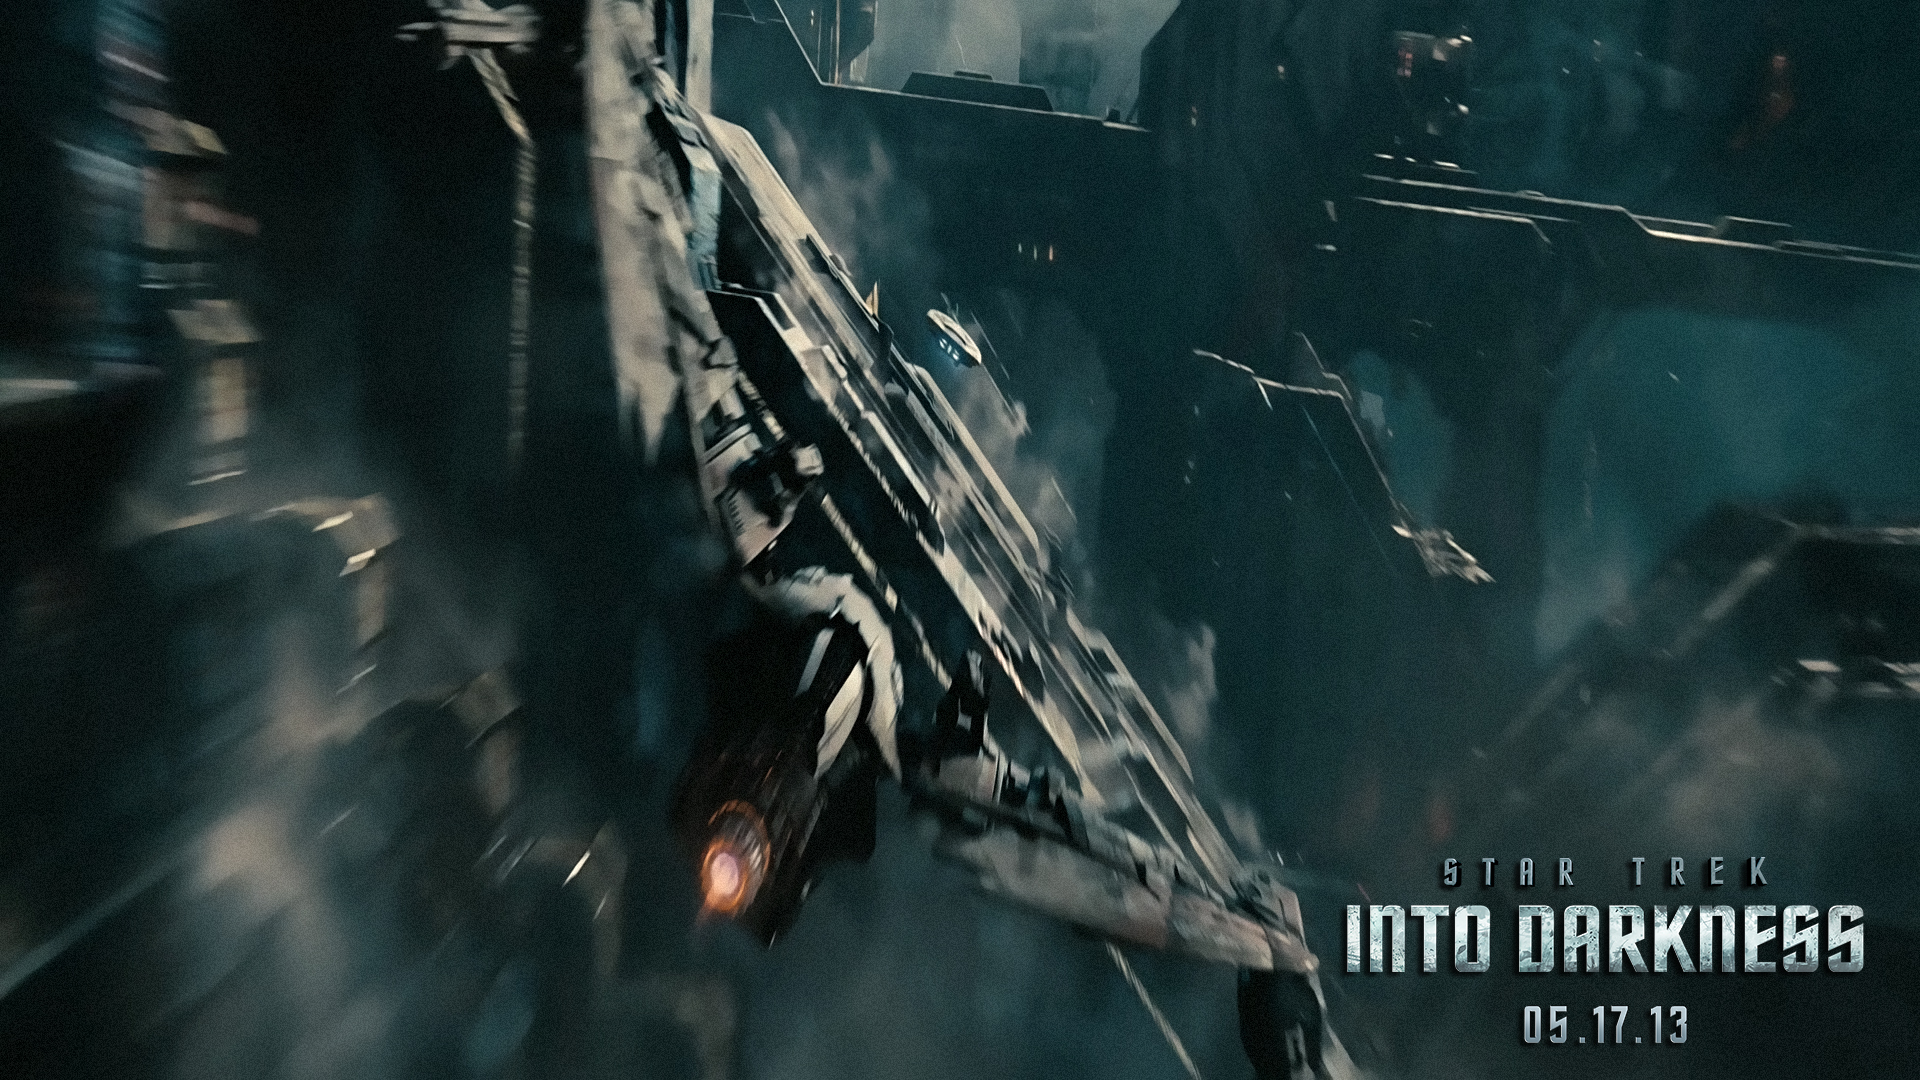 Free Download Star Trek Into Darkness Wallpapers And Theme For